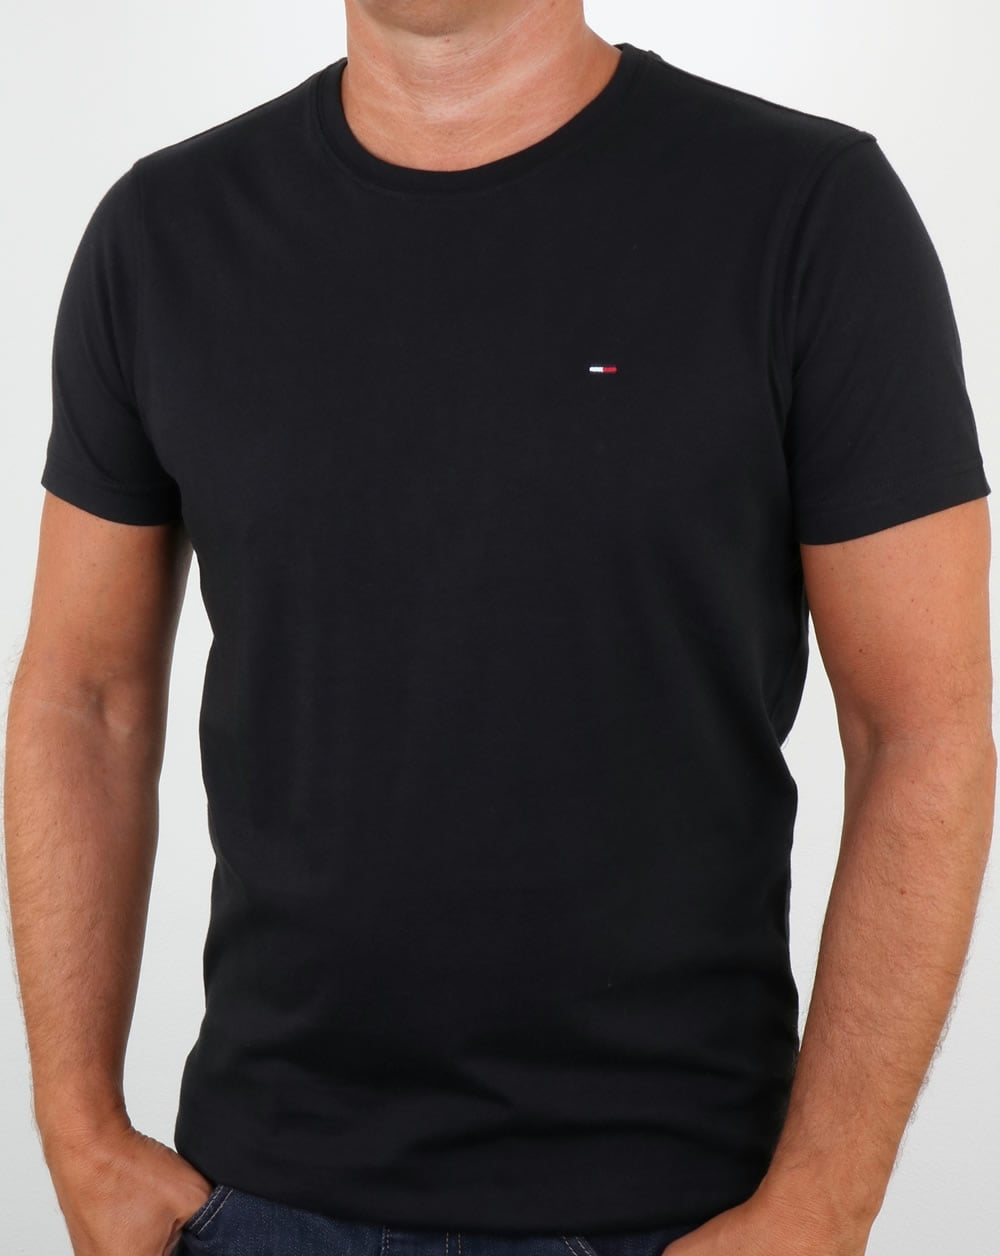 bd30a0be Tommy Hilfiger Cotton Crew Neck T Shirt Black | 80s casual classics